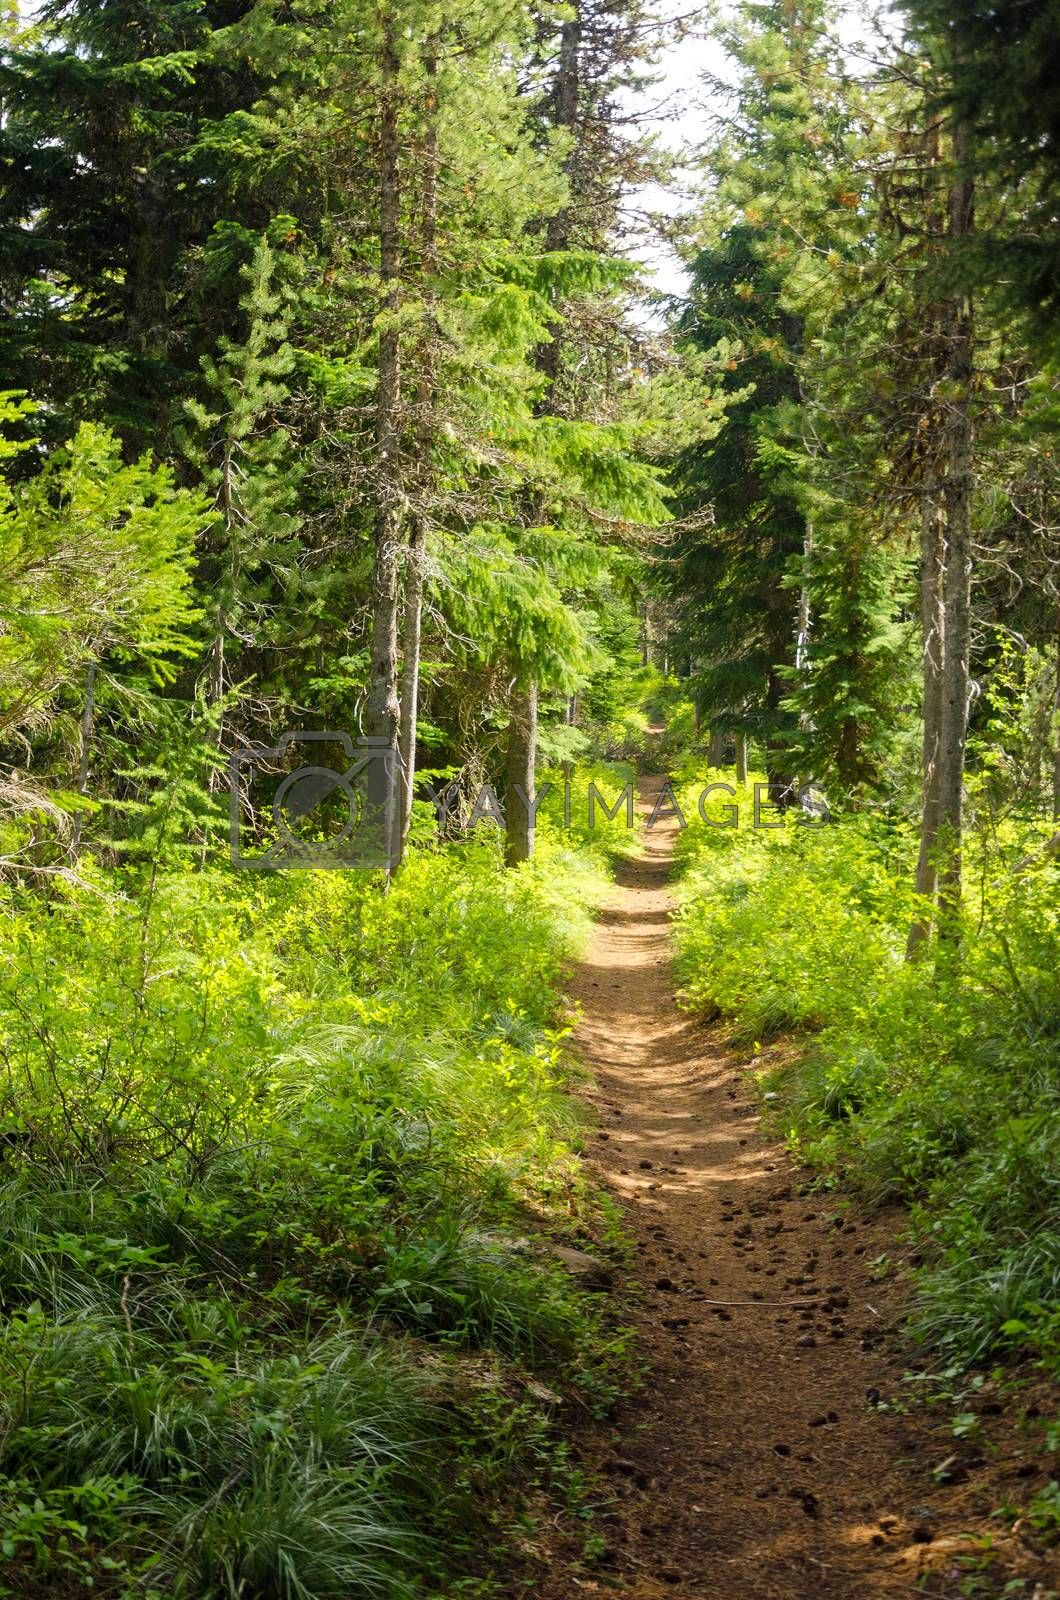 Trail passing through a lush green forest in Oregon